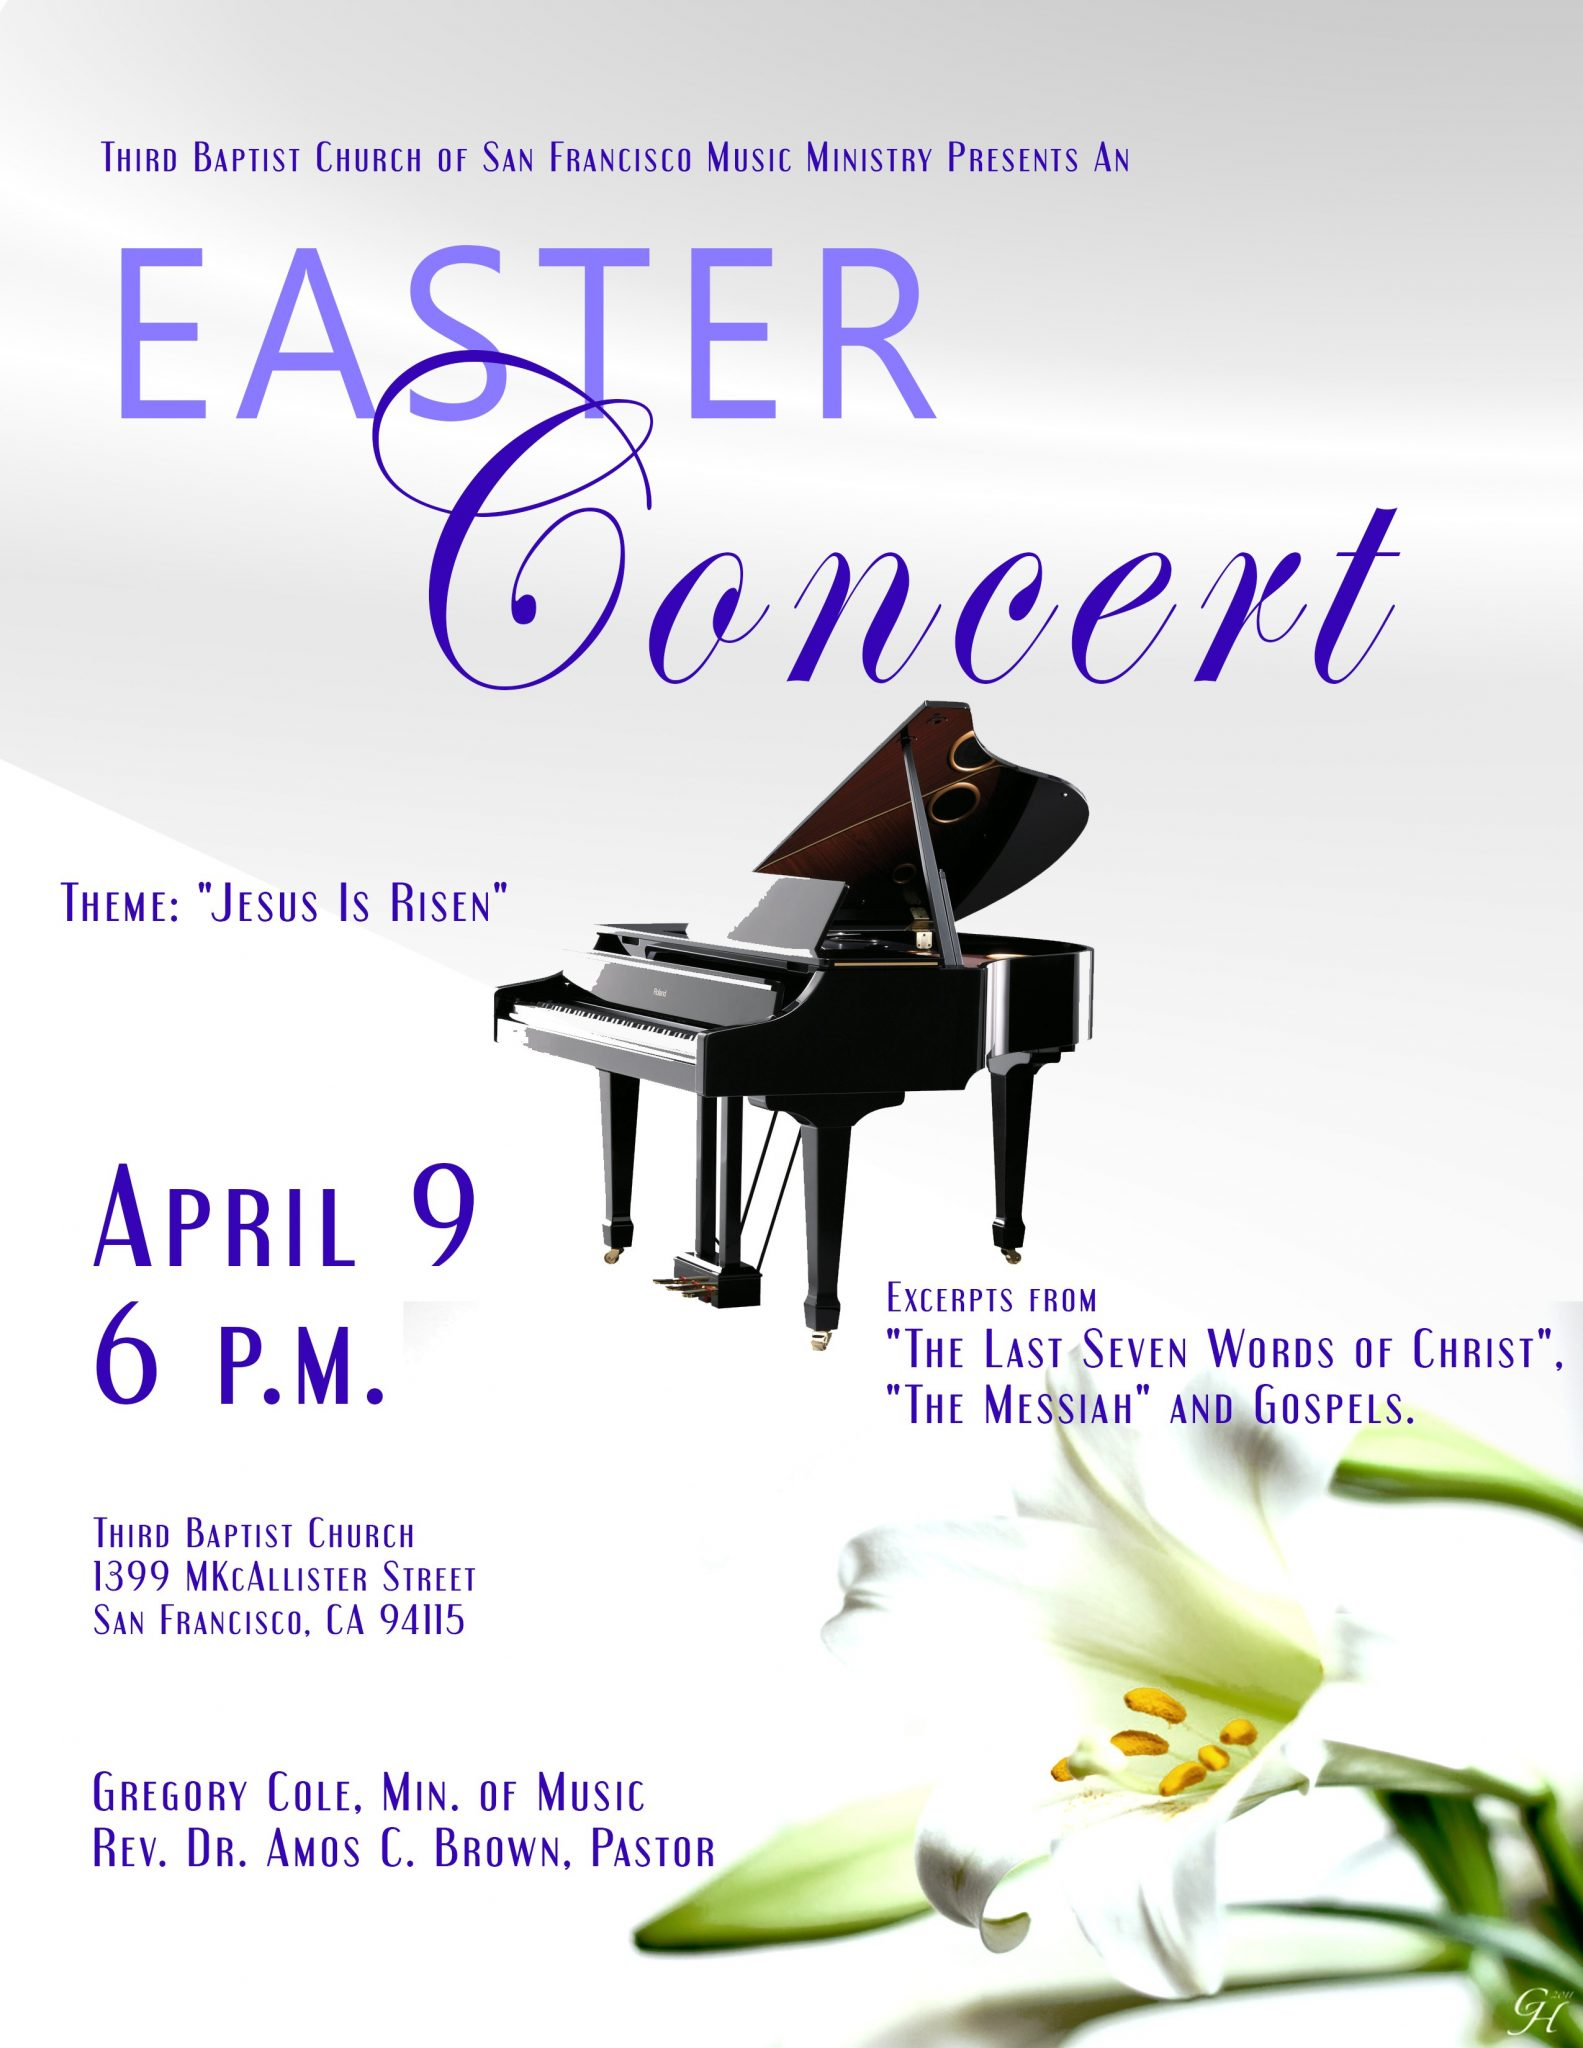 Third Baptist Church - Easter Concert